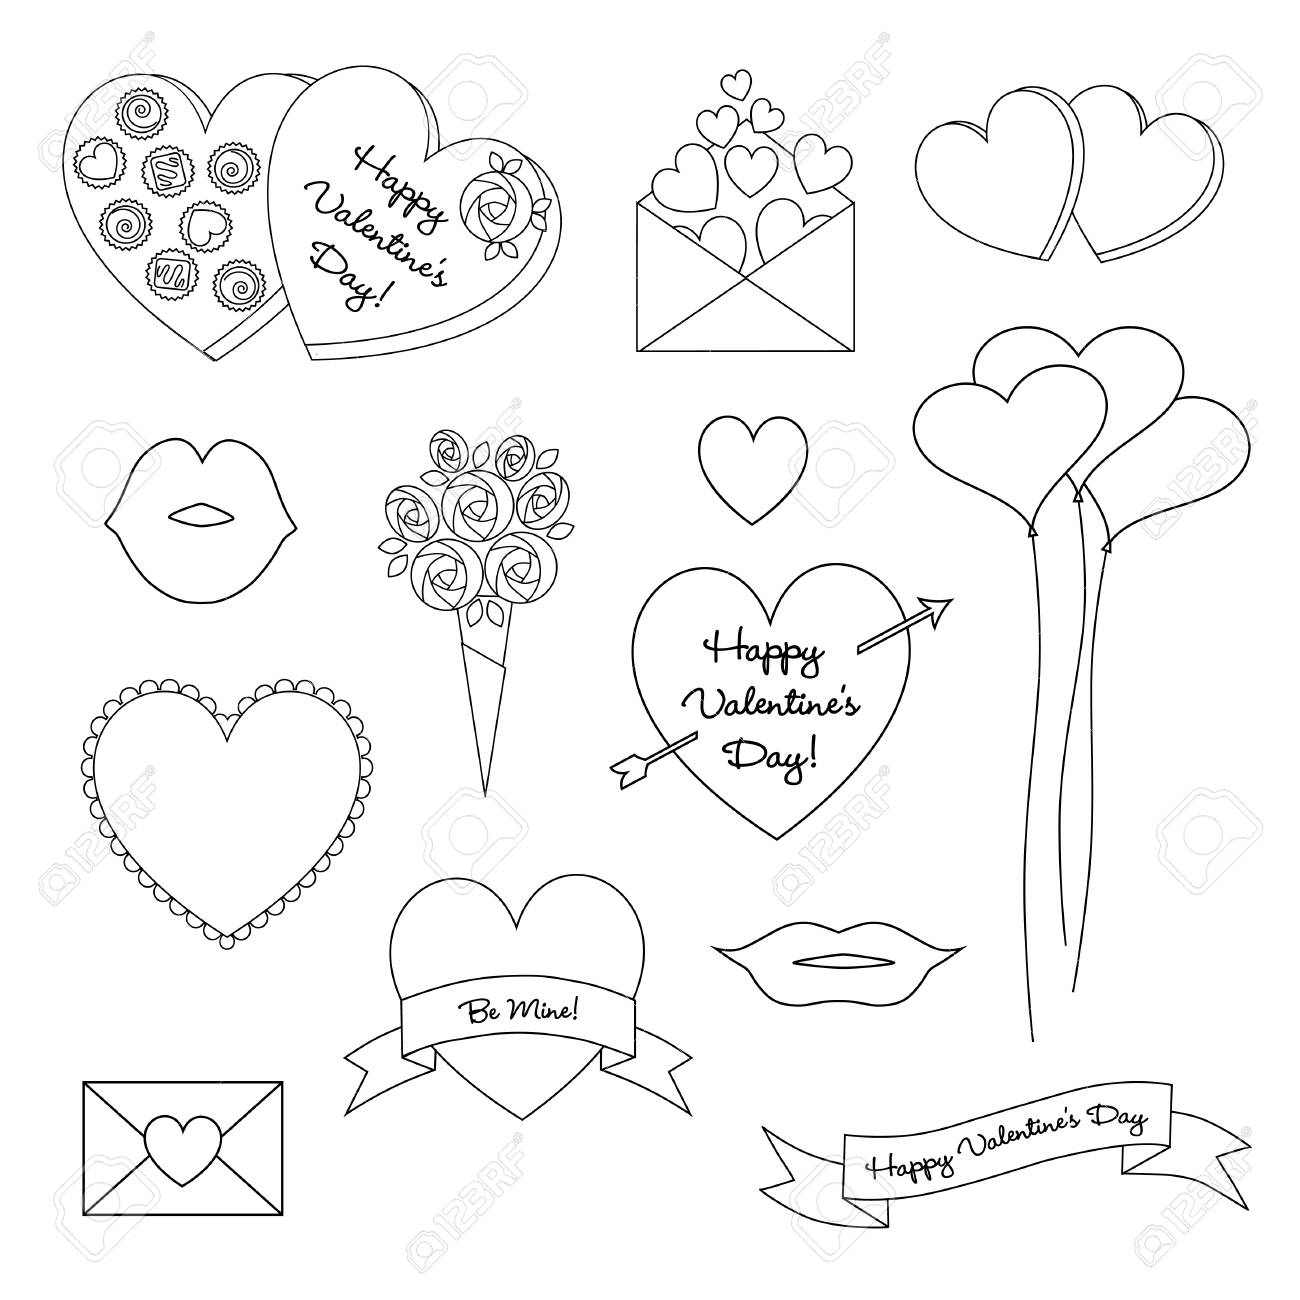 black outline valentines day vector clipart - 94312811